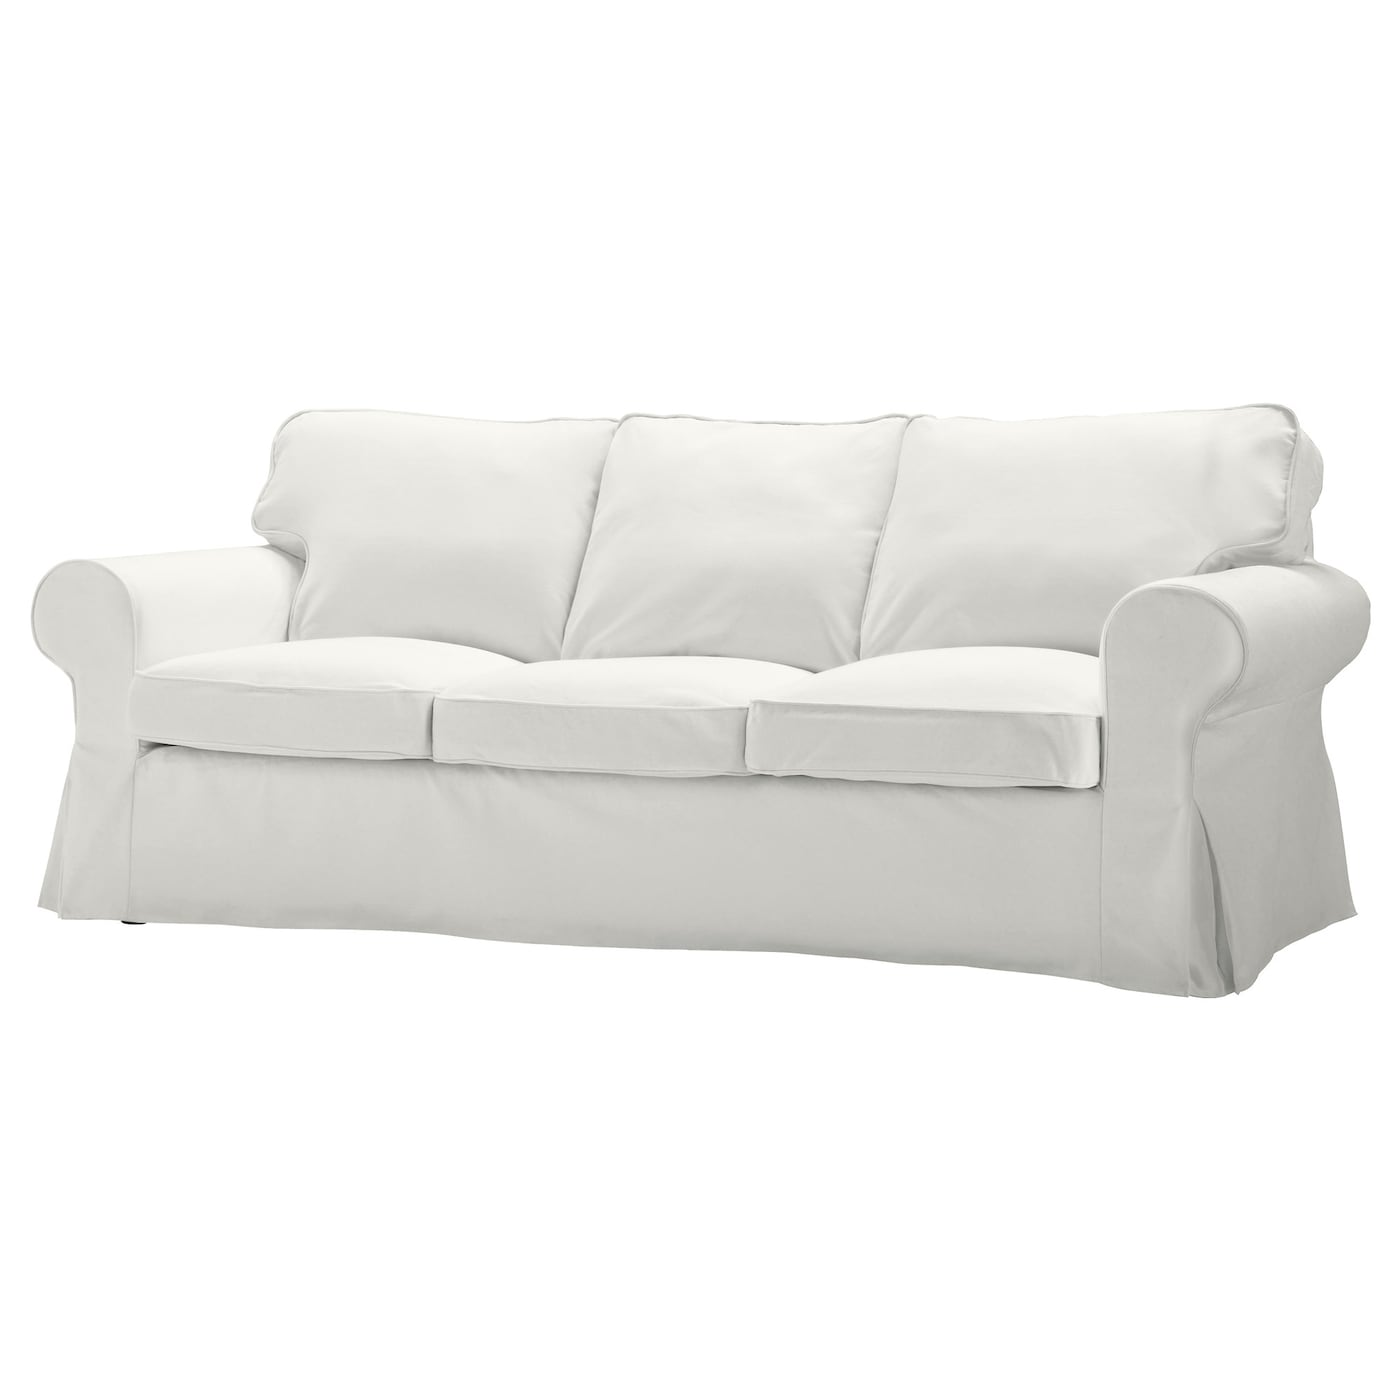 ikea ektorp cover threeseat sofa. ektorp cover threeseat sofa blekinge white  ikea